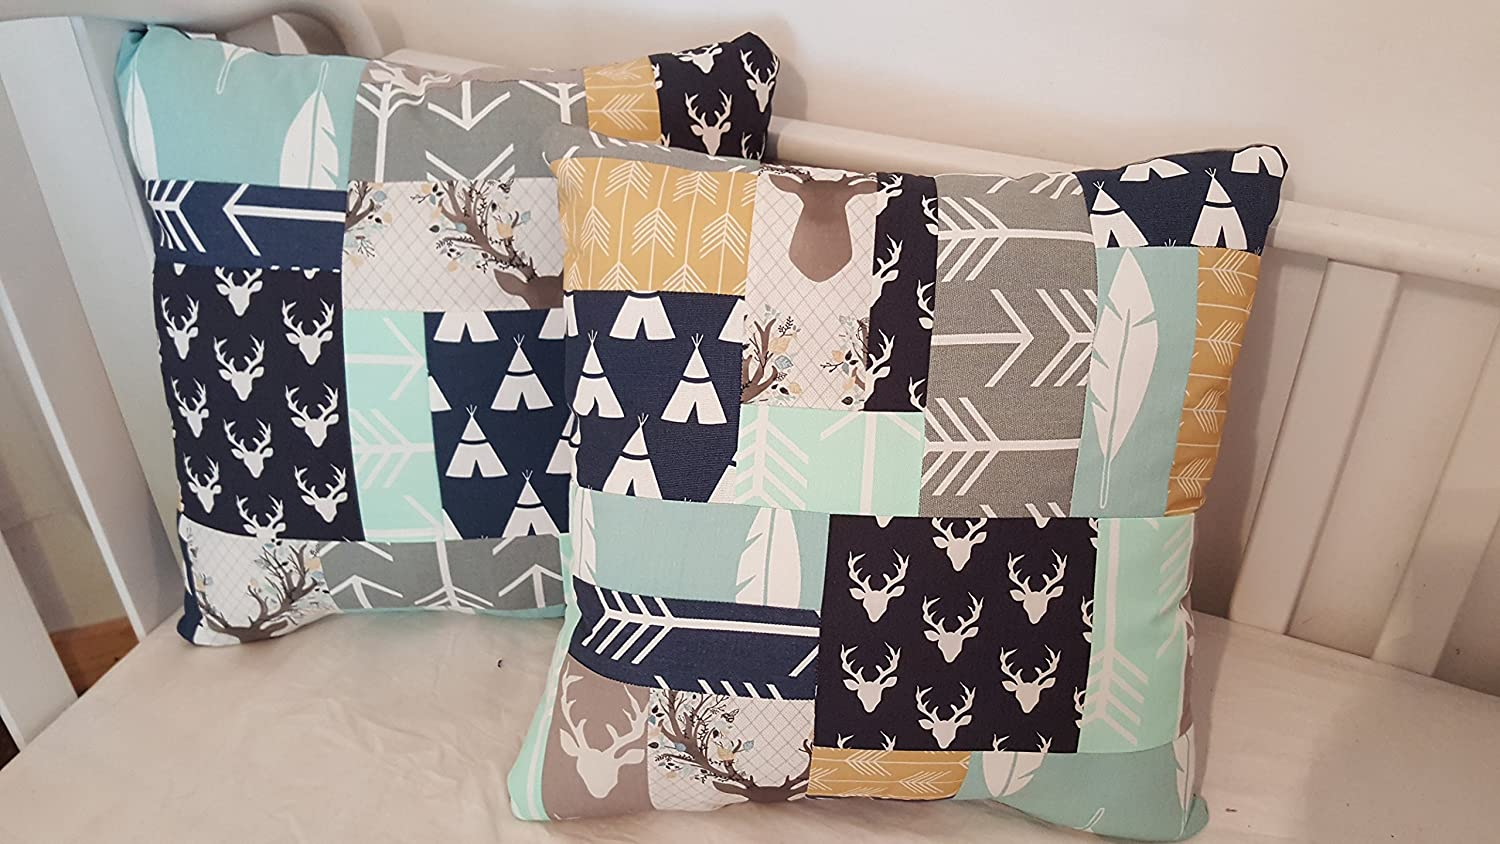 2 Patchwork pillow set, to match any crib bedding, Throw pillows, Accent pillows